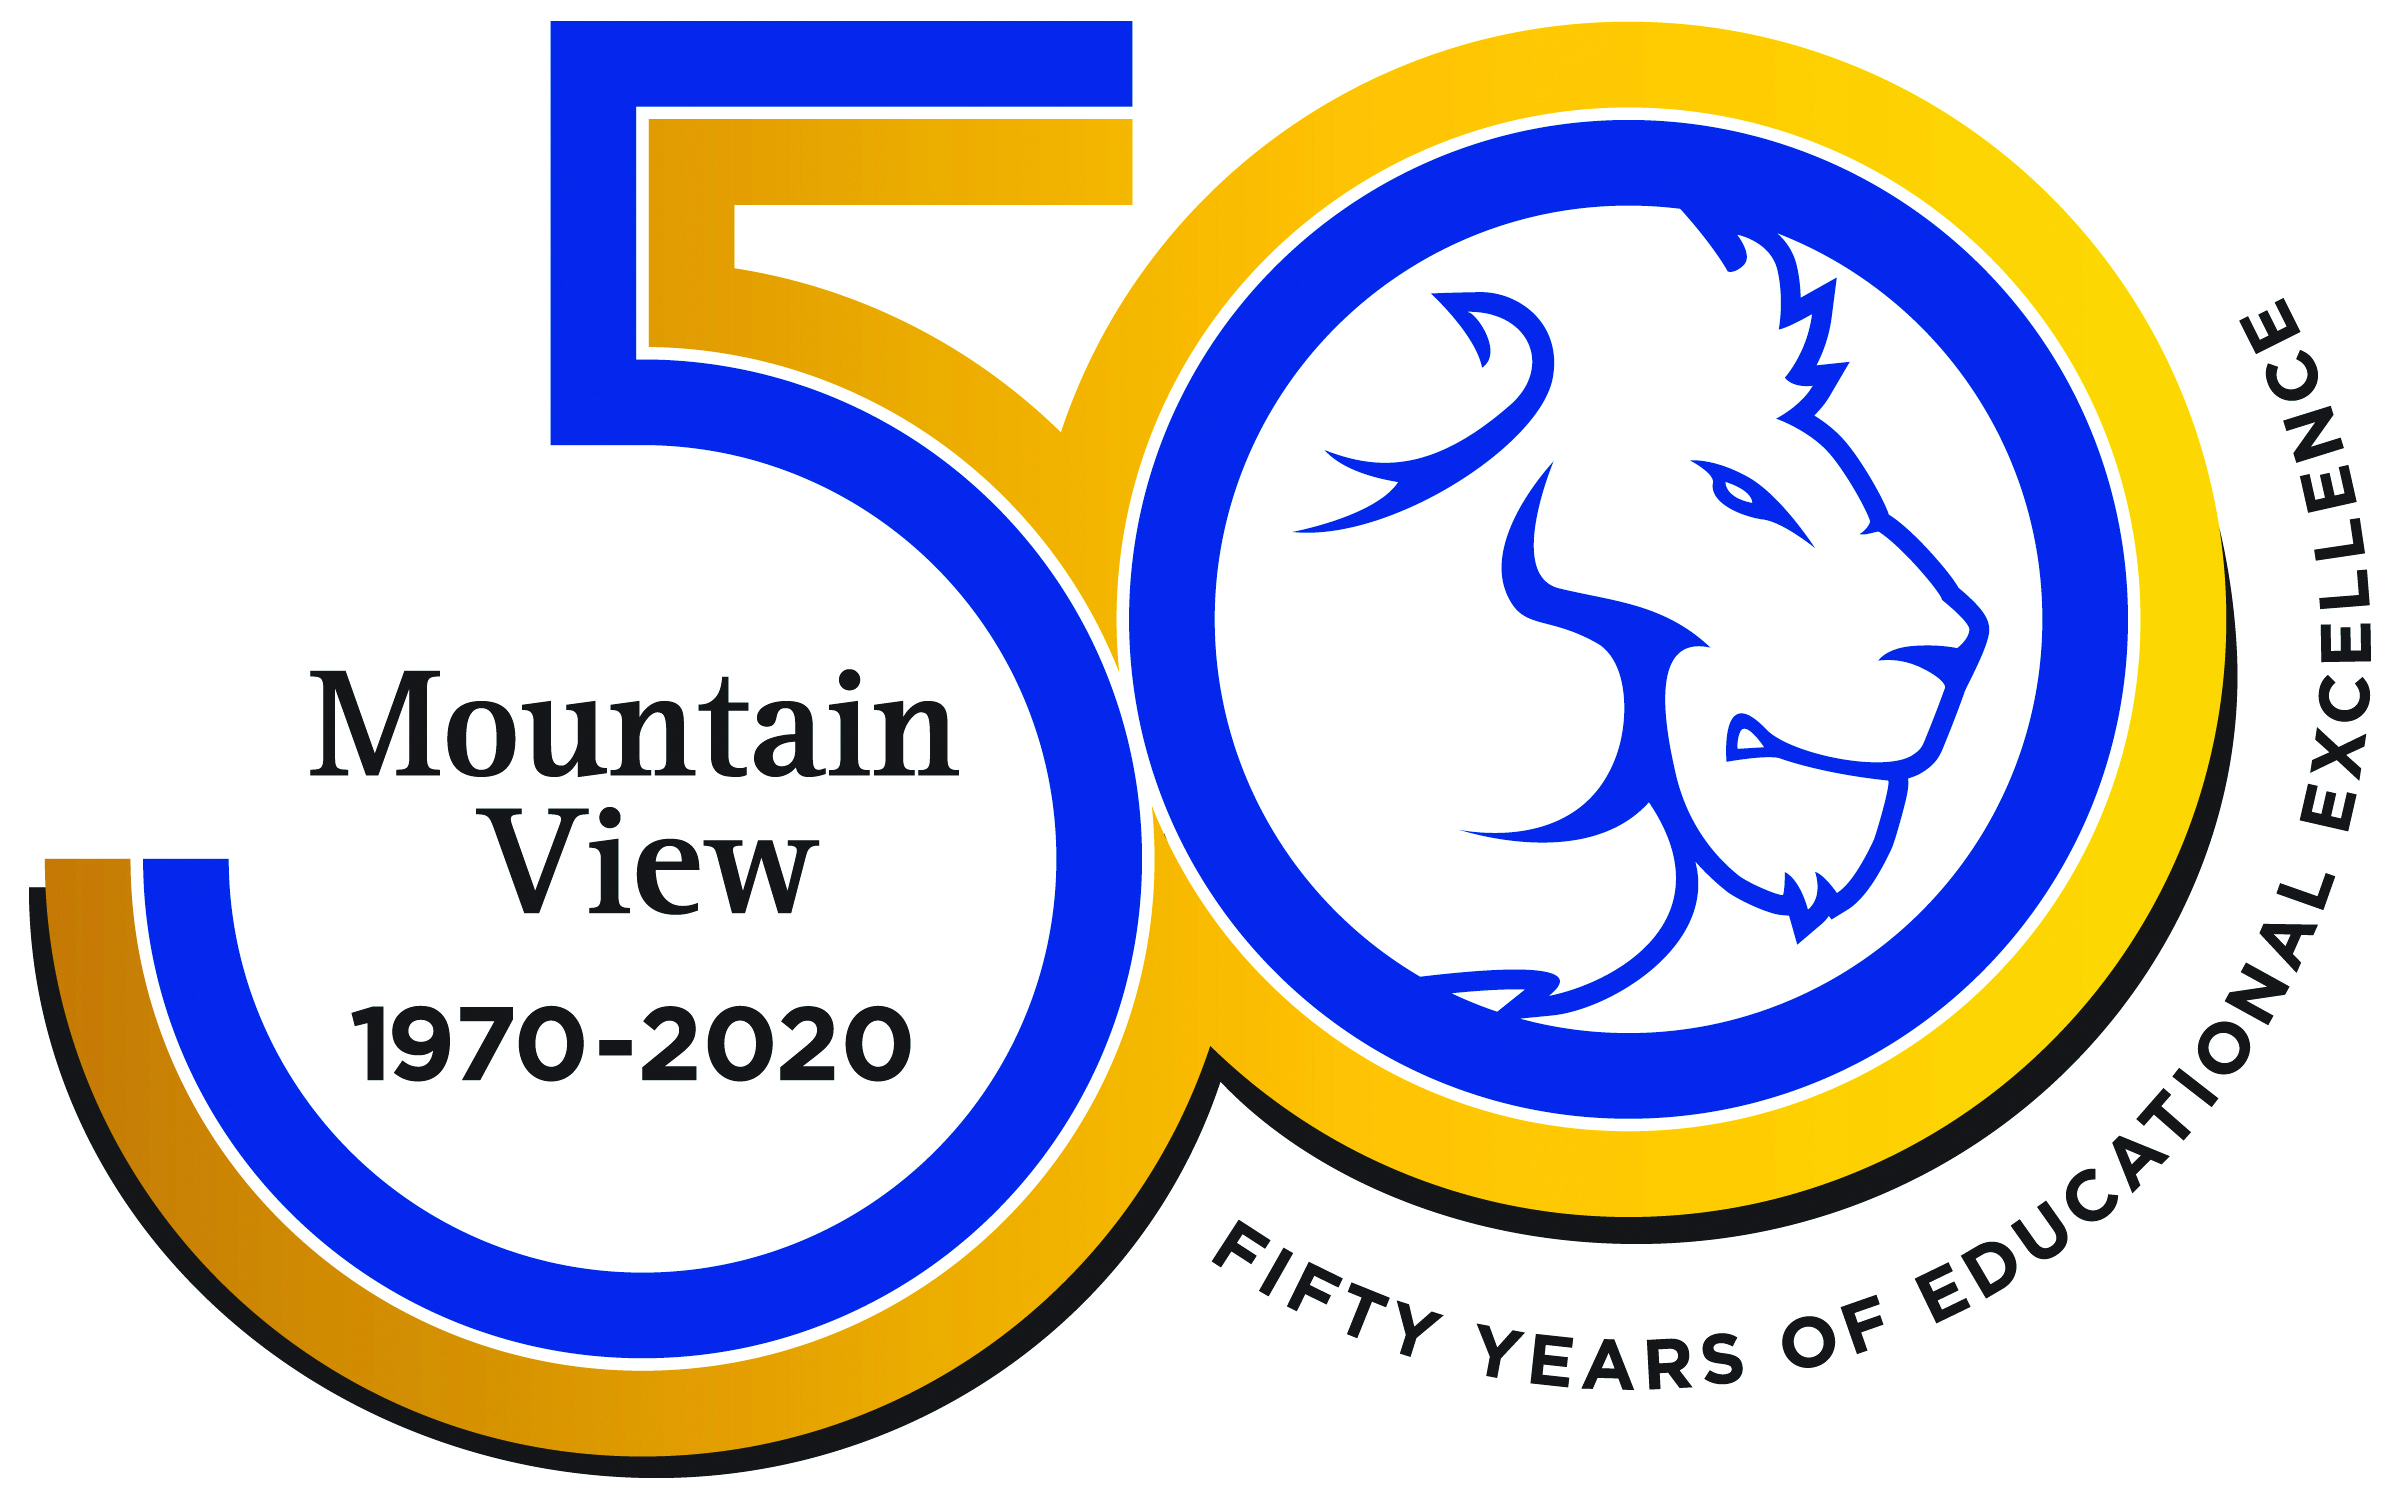 Mountain View Fifty Years of Excellence 1970-2020